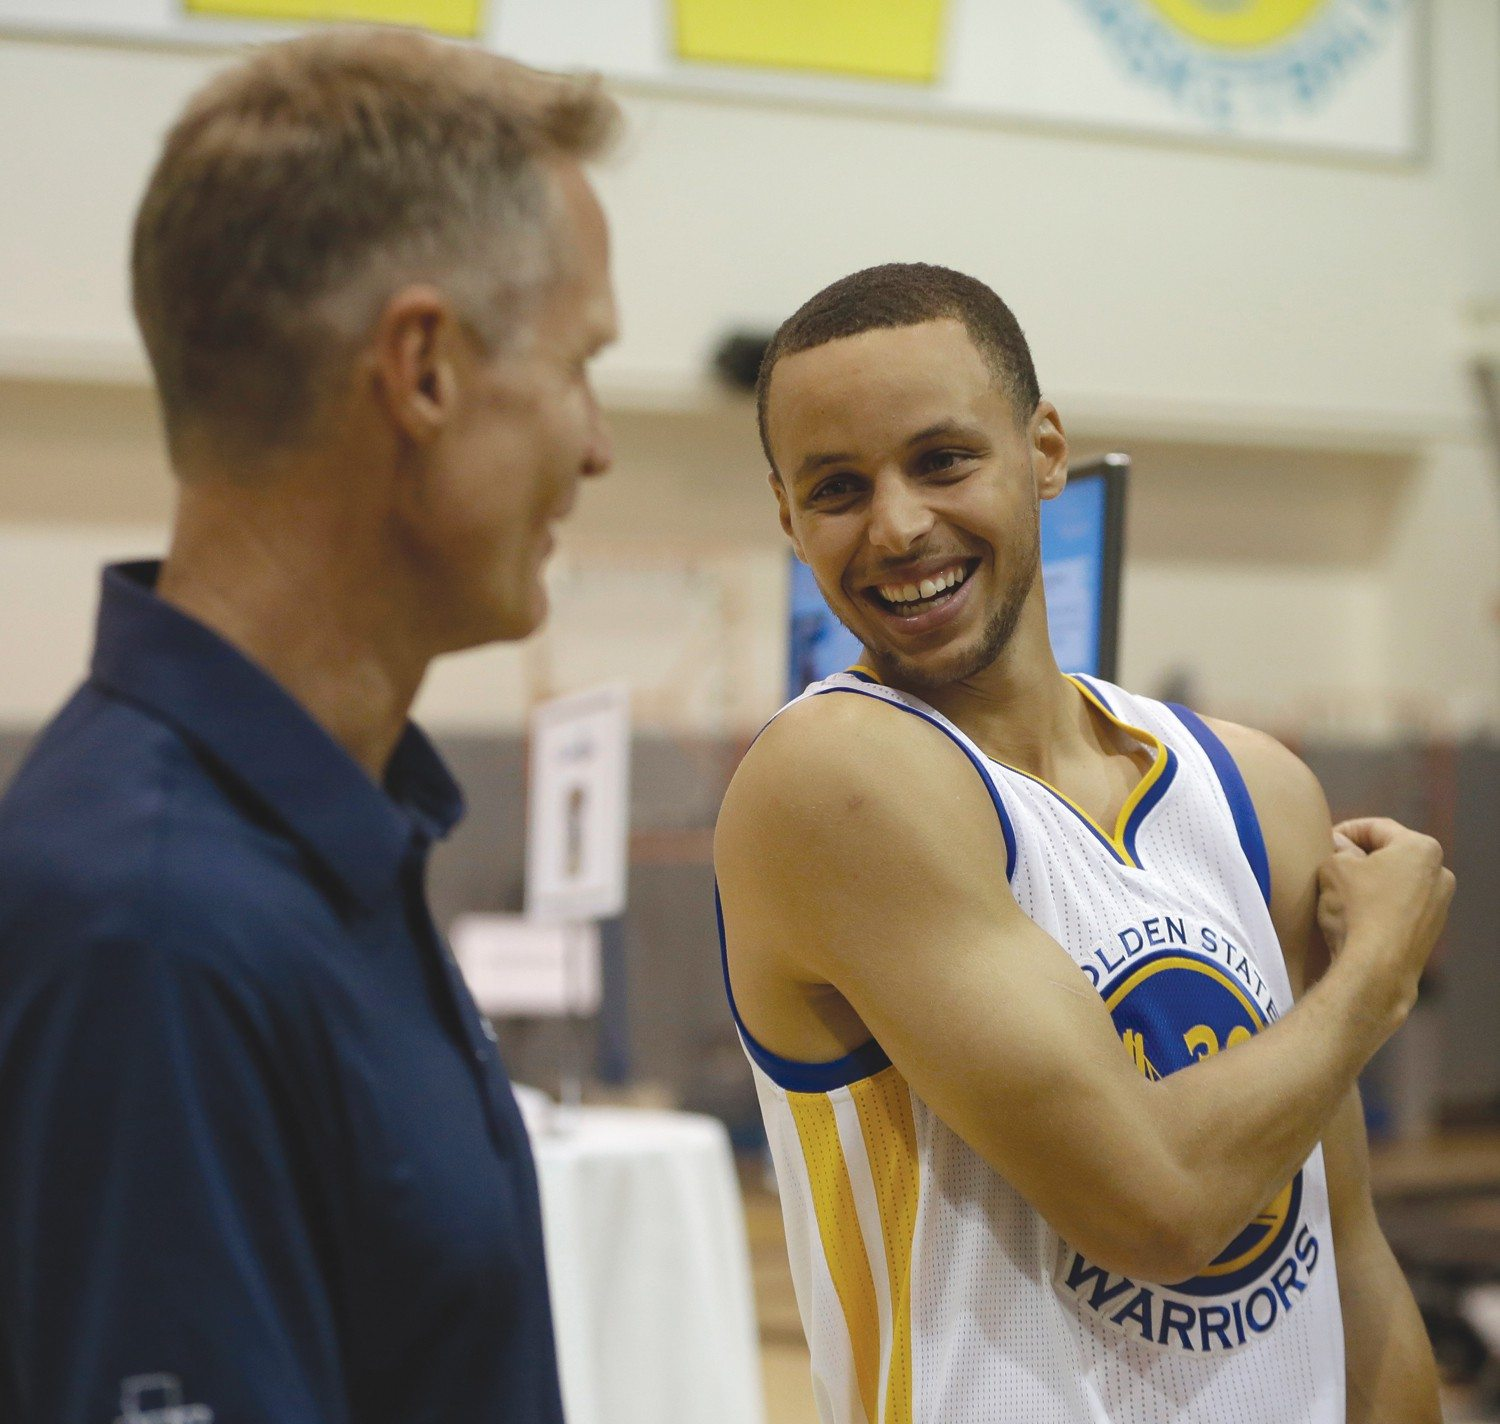 Ben Margot/APWith the return of Stephen Curry